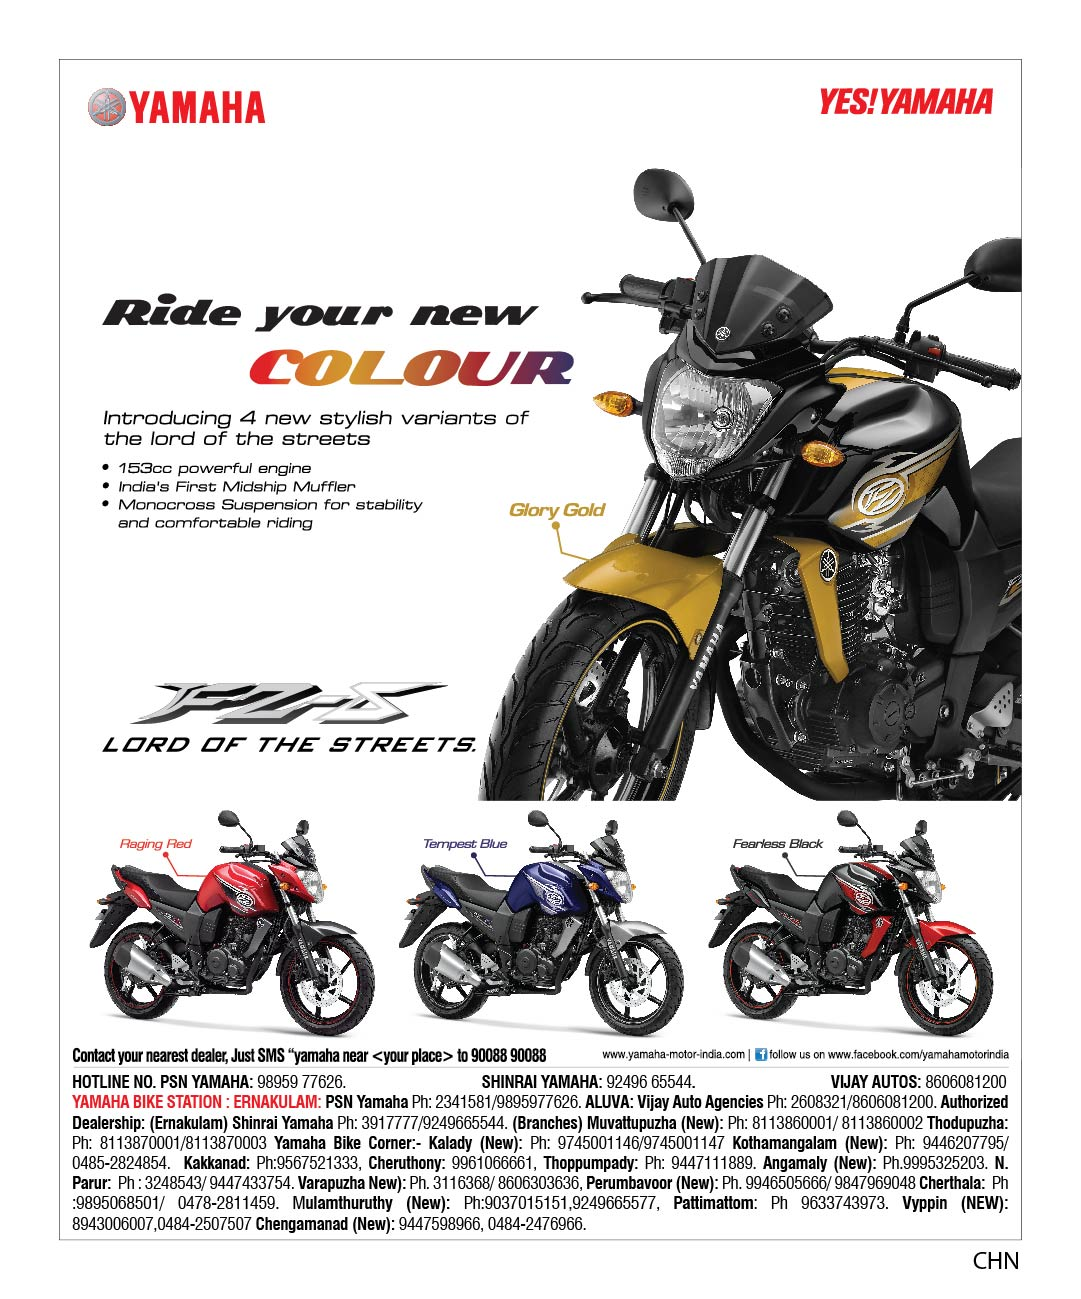 yamaha introduction View notes - yamaha from ac 219 hc at montgomery college introduction ever since its founding as a motorcycle manufacturer on july 1, 1955, yamaha motor company has worked to build products which.